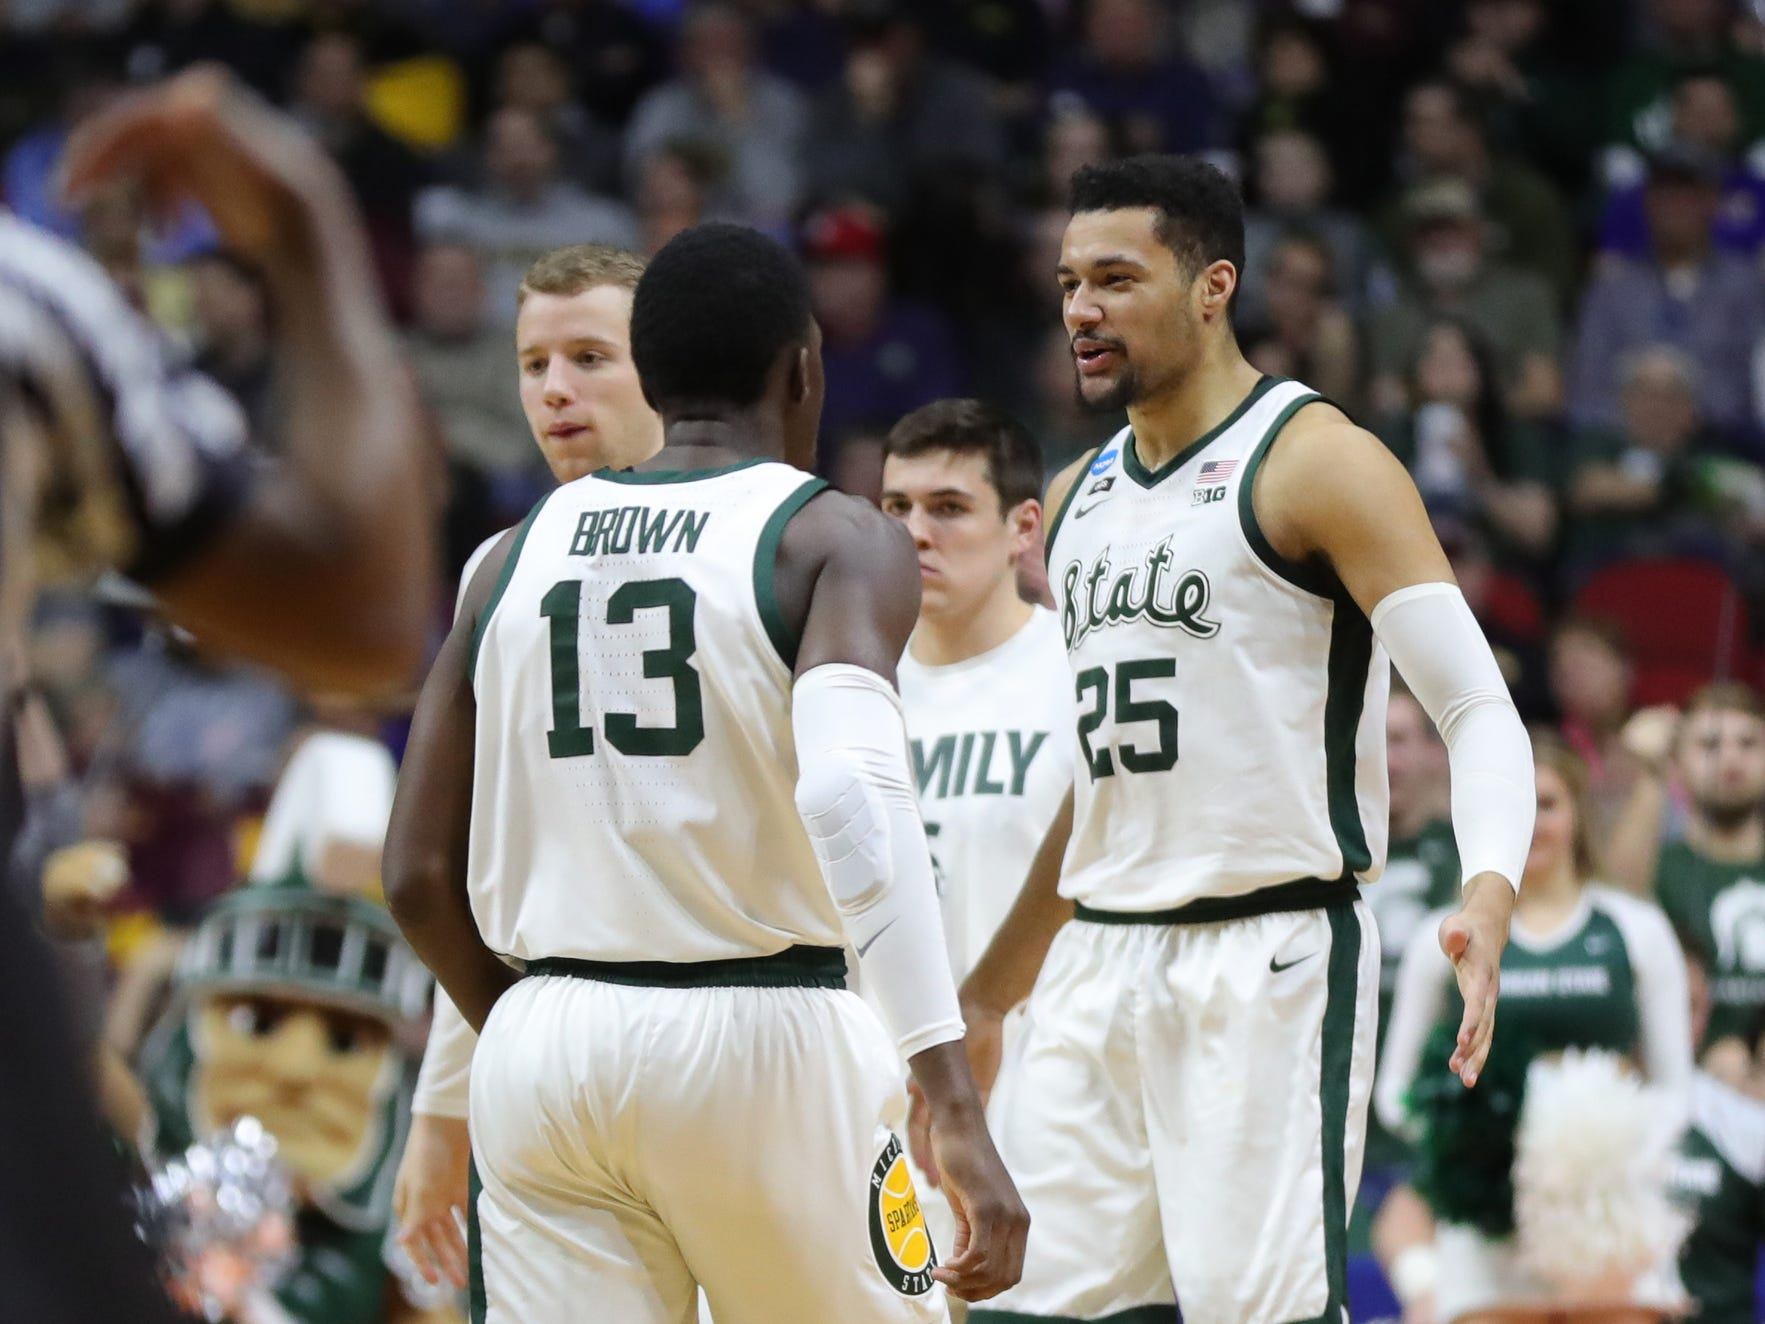 Michigan State's Kenny Goins and Gabe Brown celebrate against Minnesota in the first half of their second round NCAA tournament game Saturday, March 23, 2019 at Wells Fargo Arena in Des Moines, Iowa.